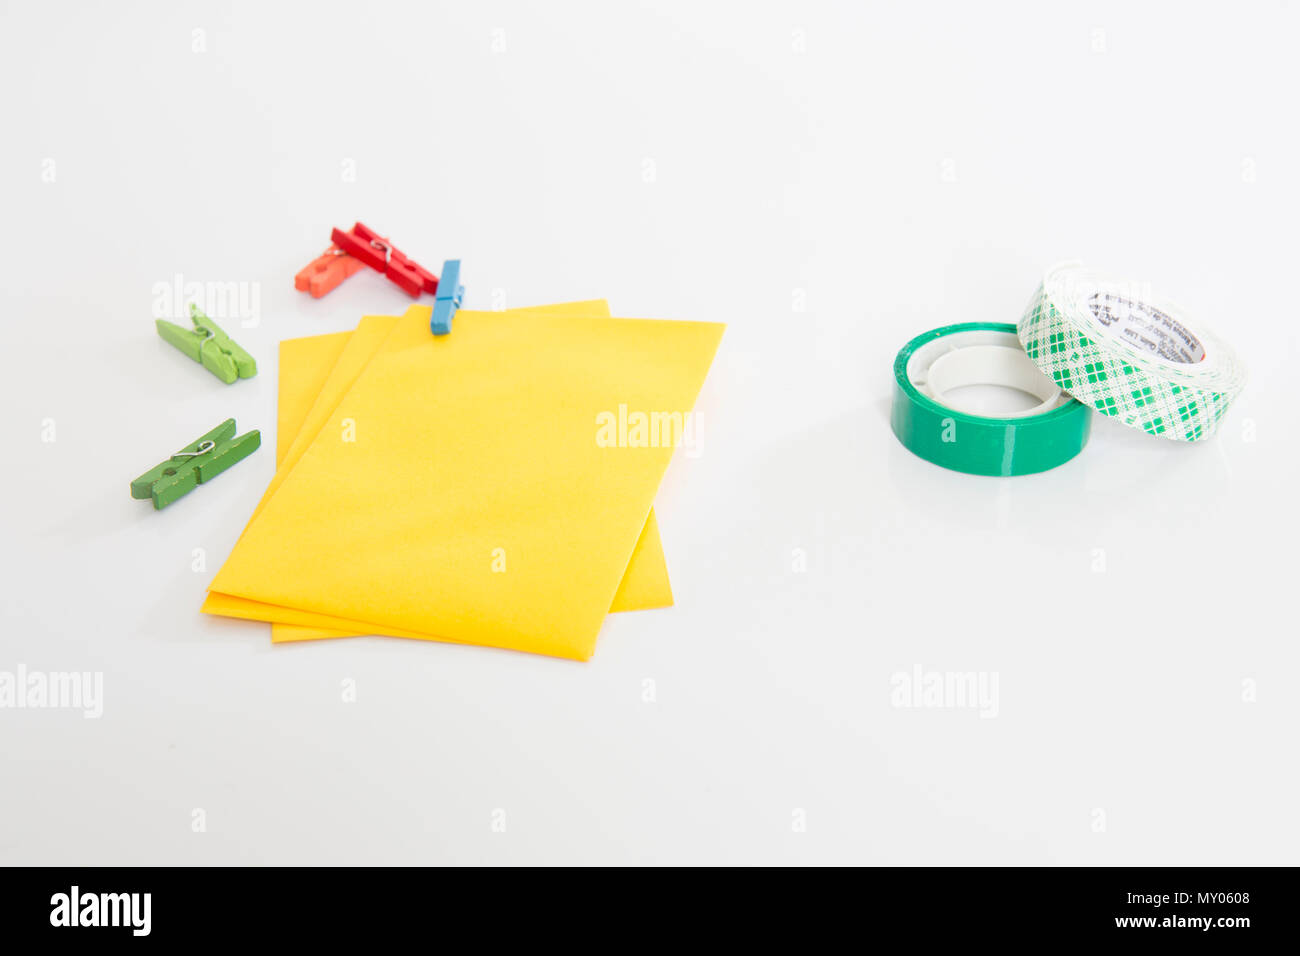 Inspired Craft Tools In A White Background Stock Photo 188704104